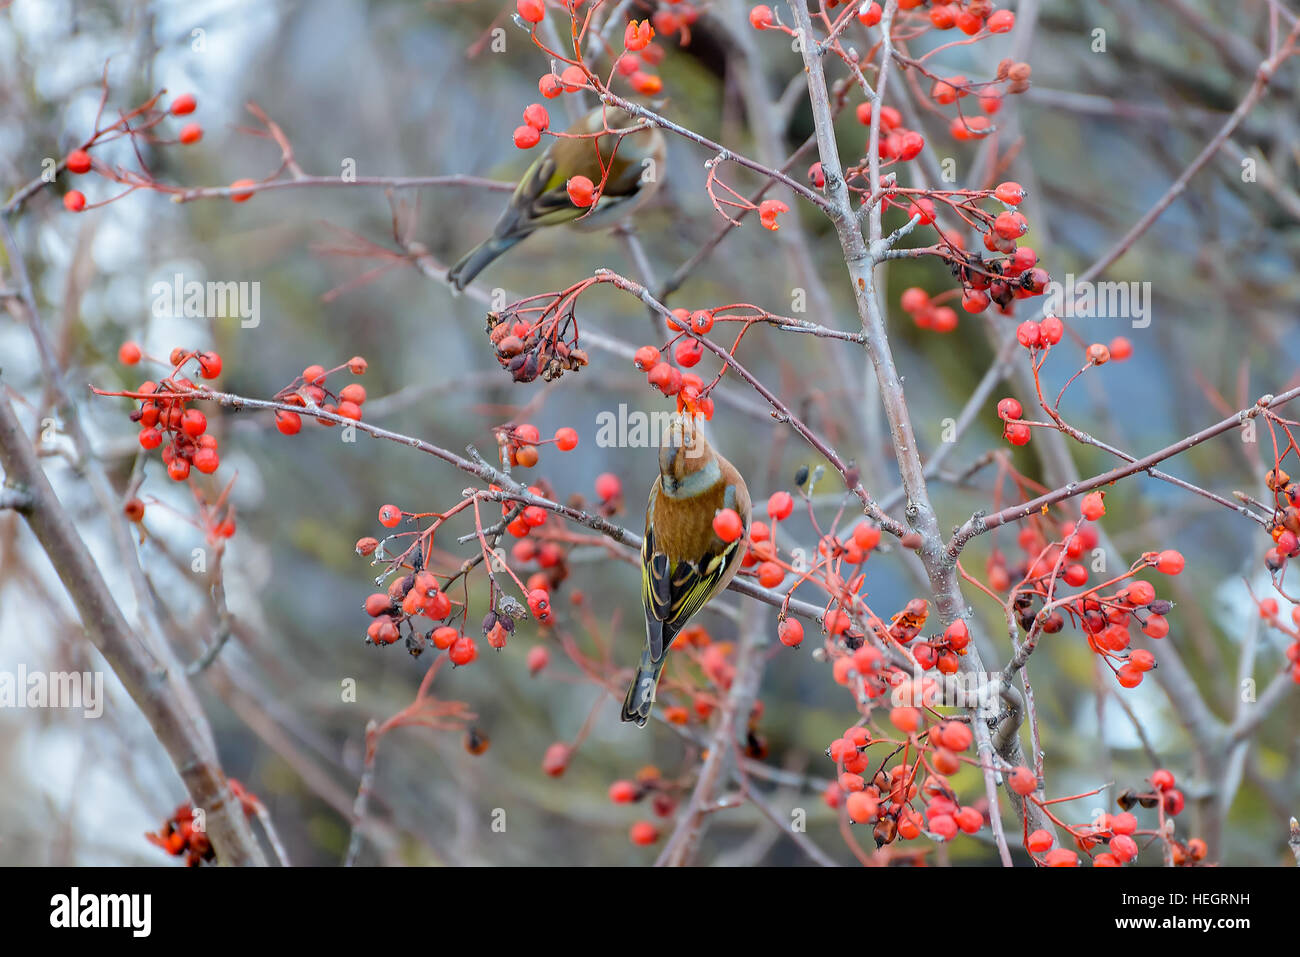 Chaffinches sitting on the branches of a Rowan tree and eats the berries - Stock Image